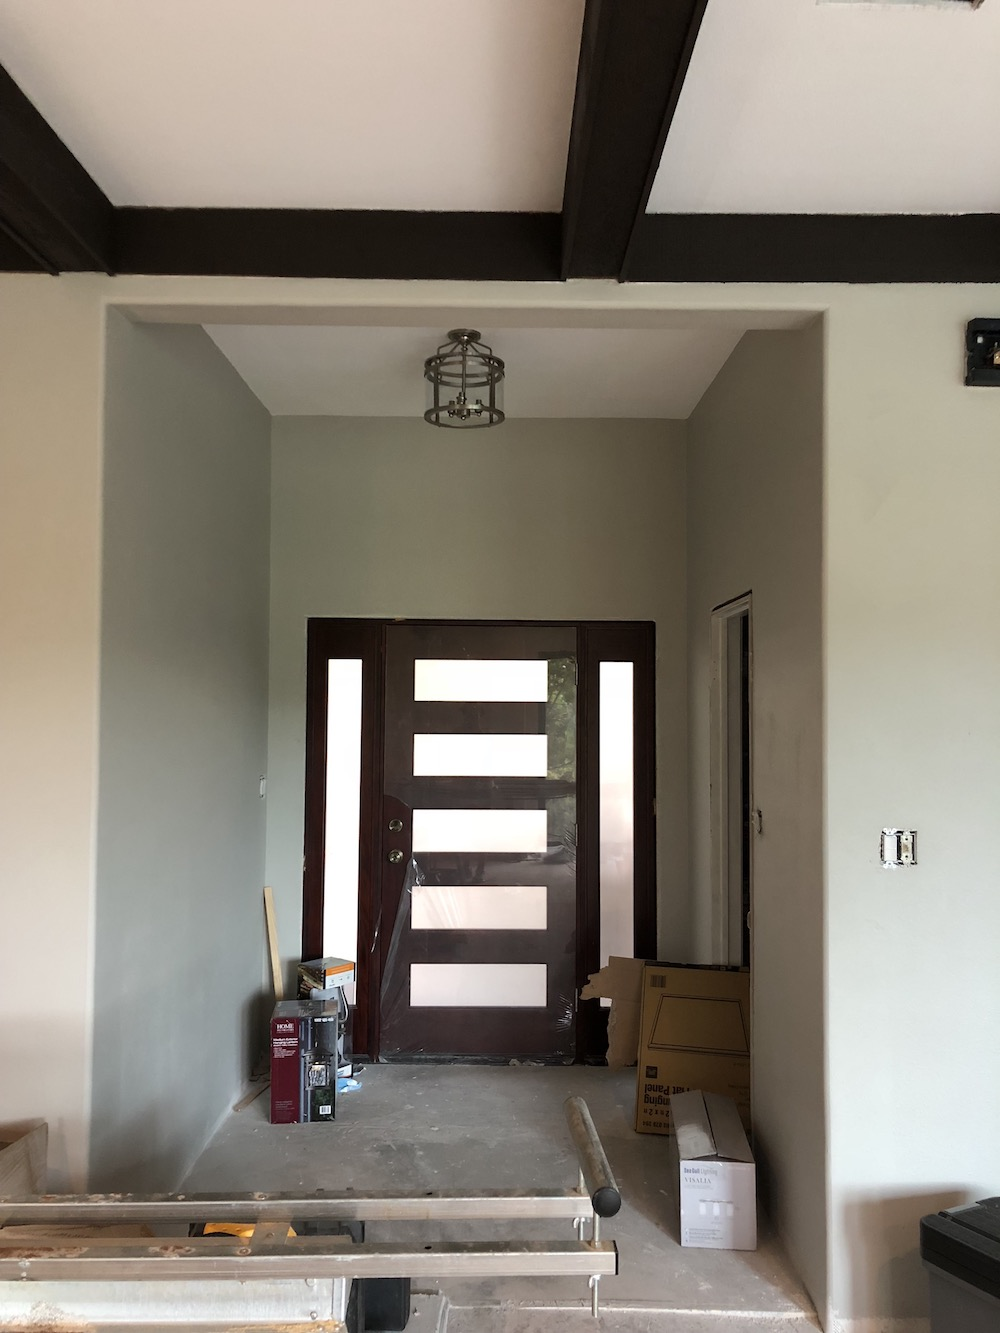 The final entryway